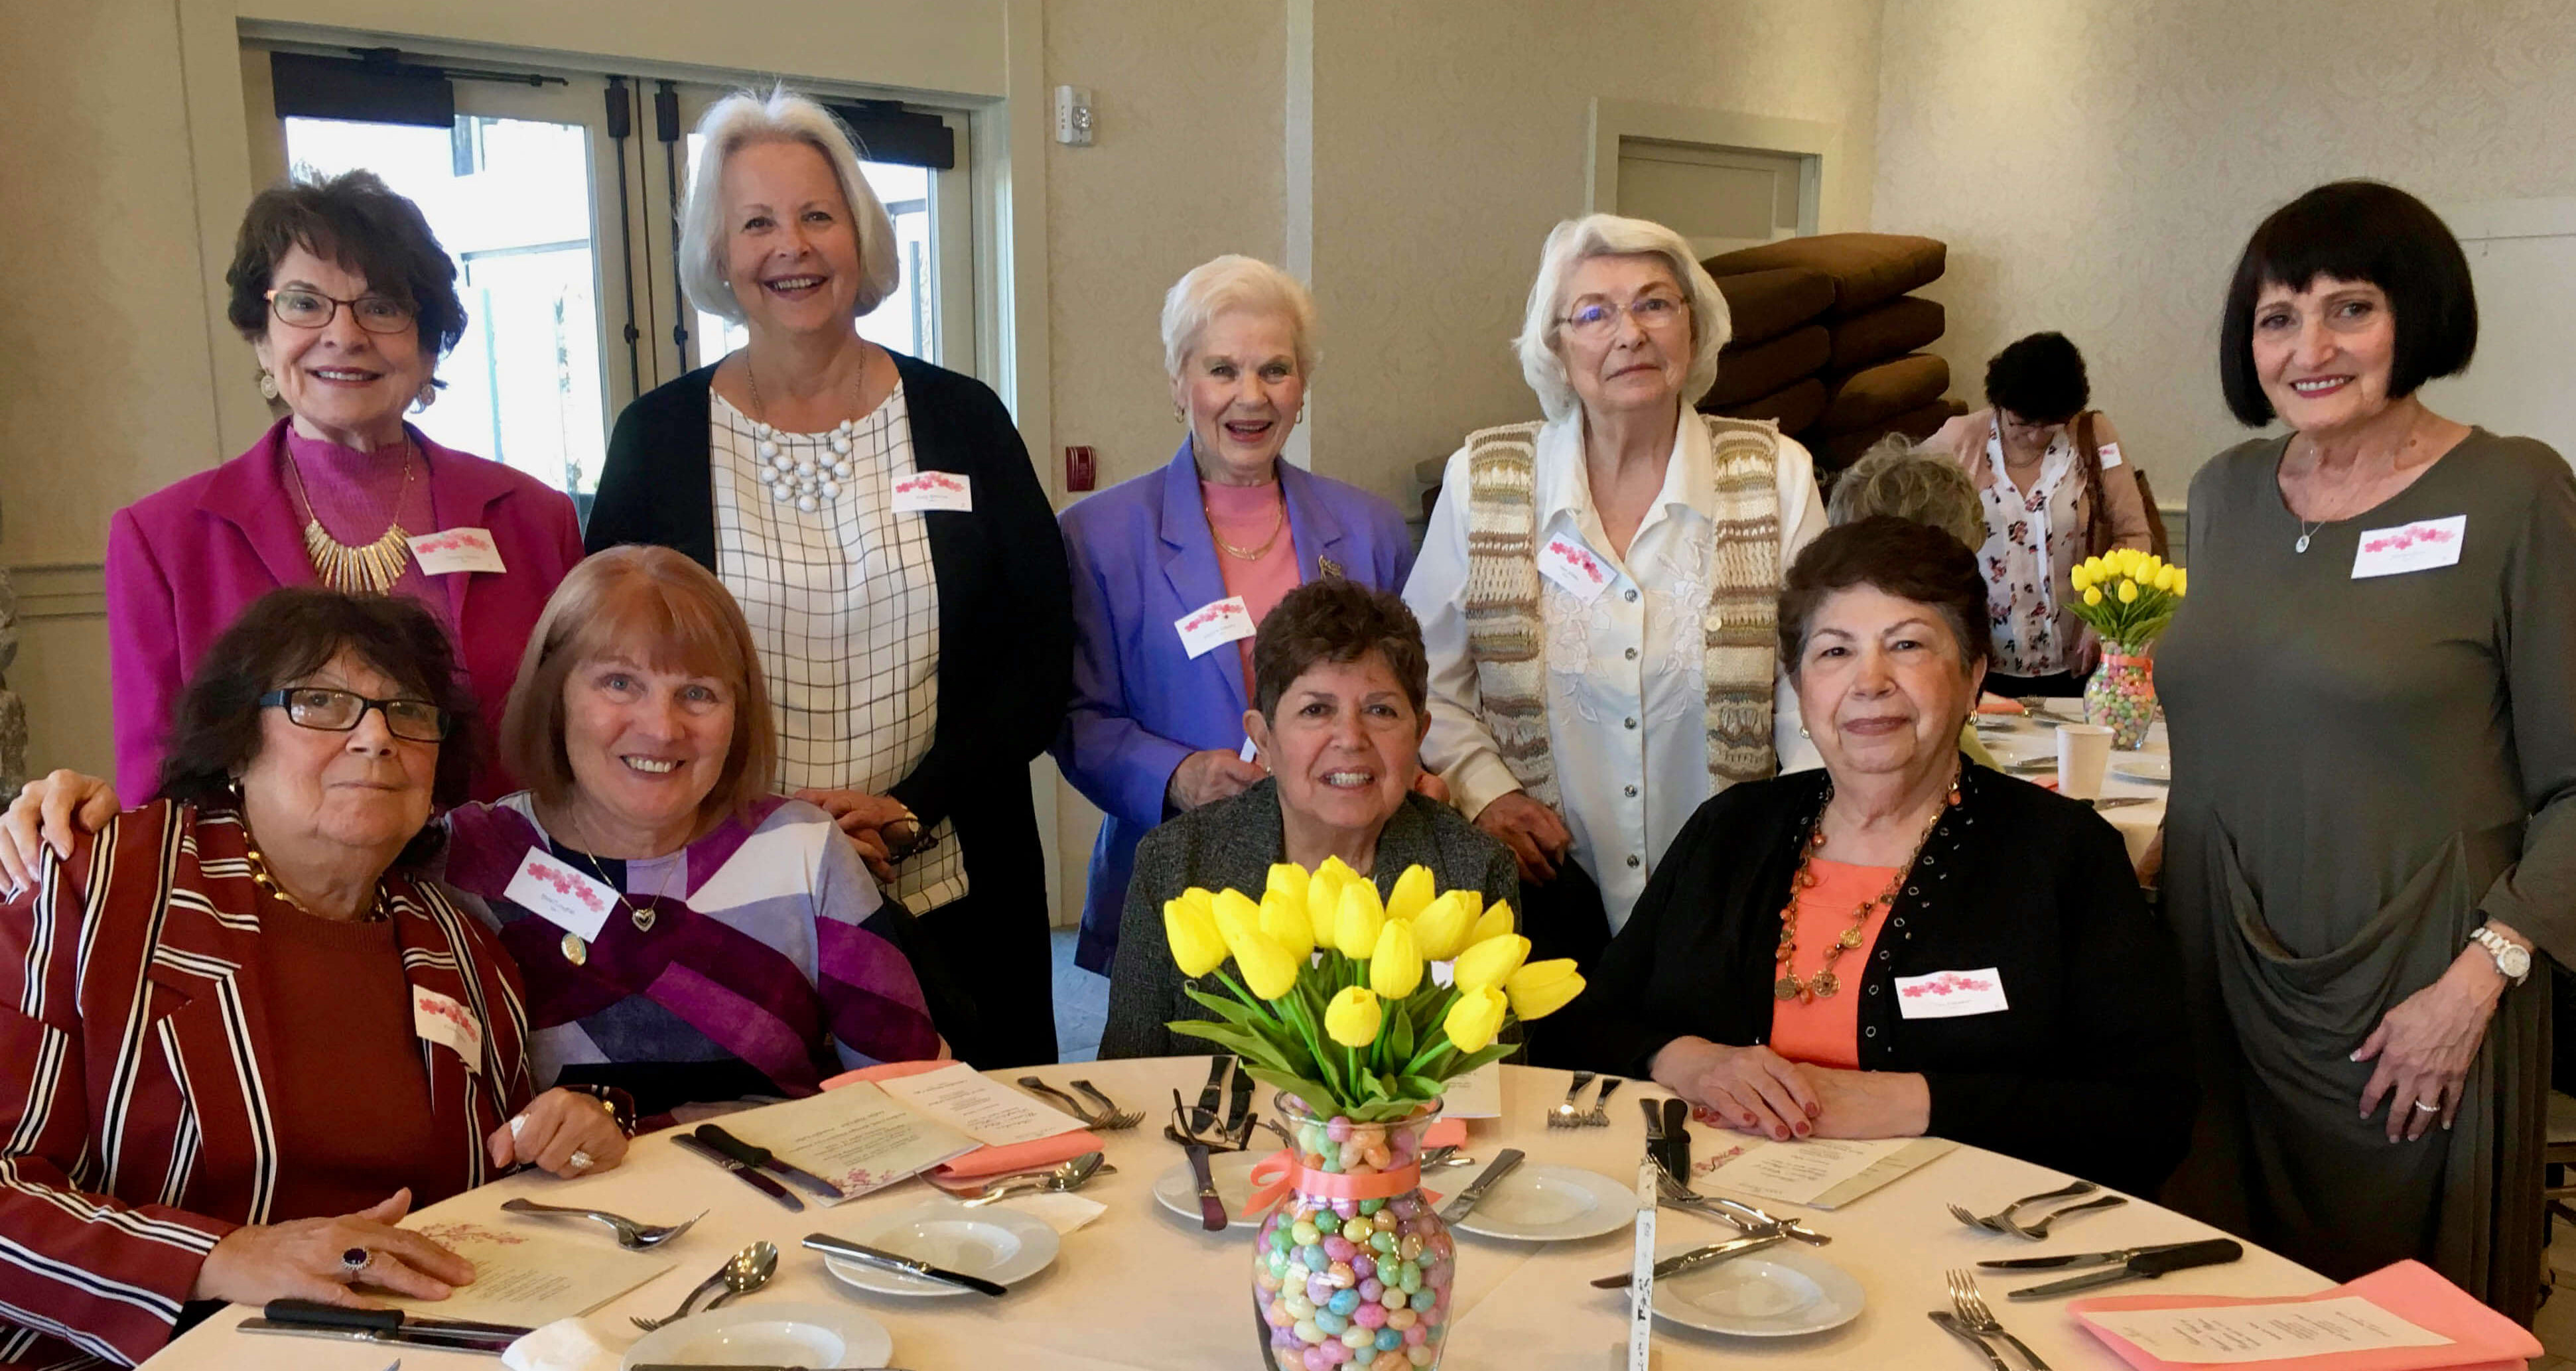 Dorothy Verdone, Kathy Ambrose, Marjorie Detweiler, Helen Mekita and Marilyn Saias, standing, and Elaine Muzzillo, Anne O'Loughlin, Julliet Borgersen, and Tina Pellicciari attended the April Achievement Day luncheon. The Club won two awards.